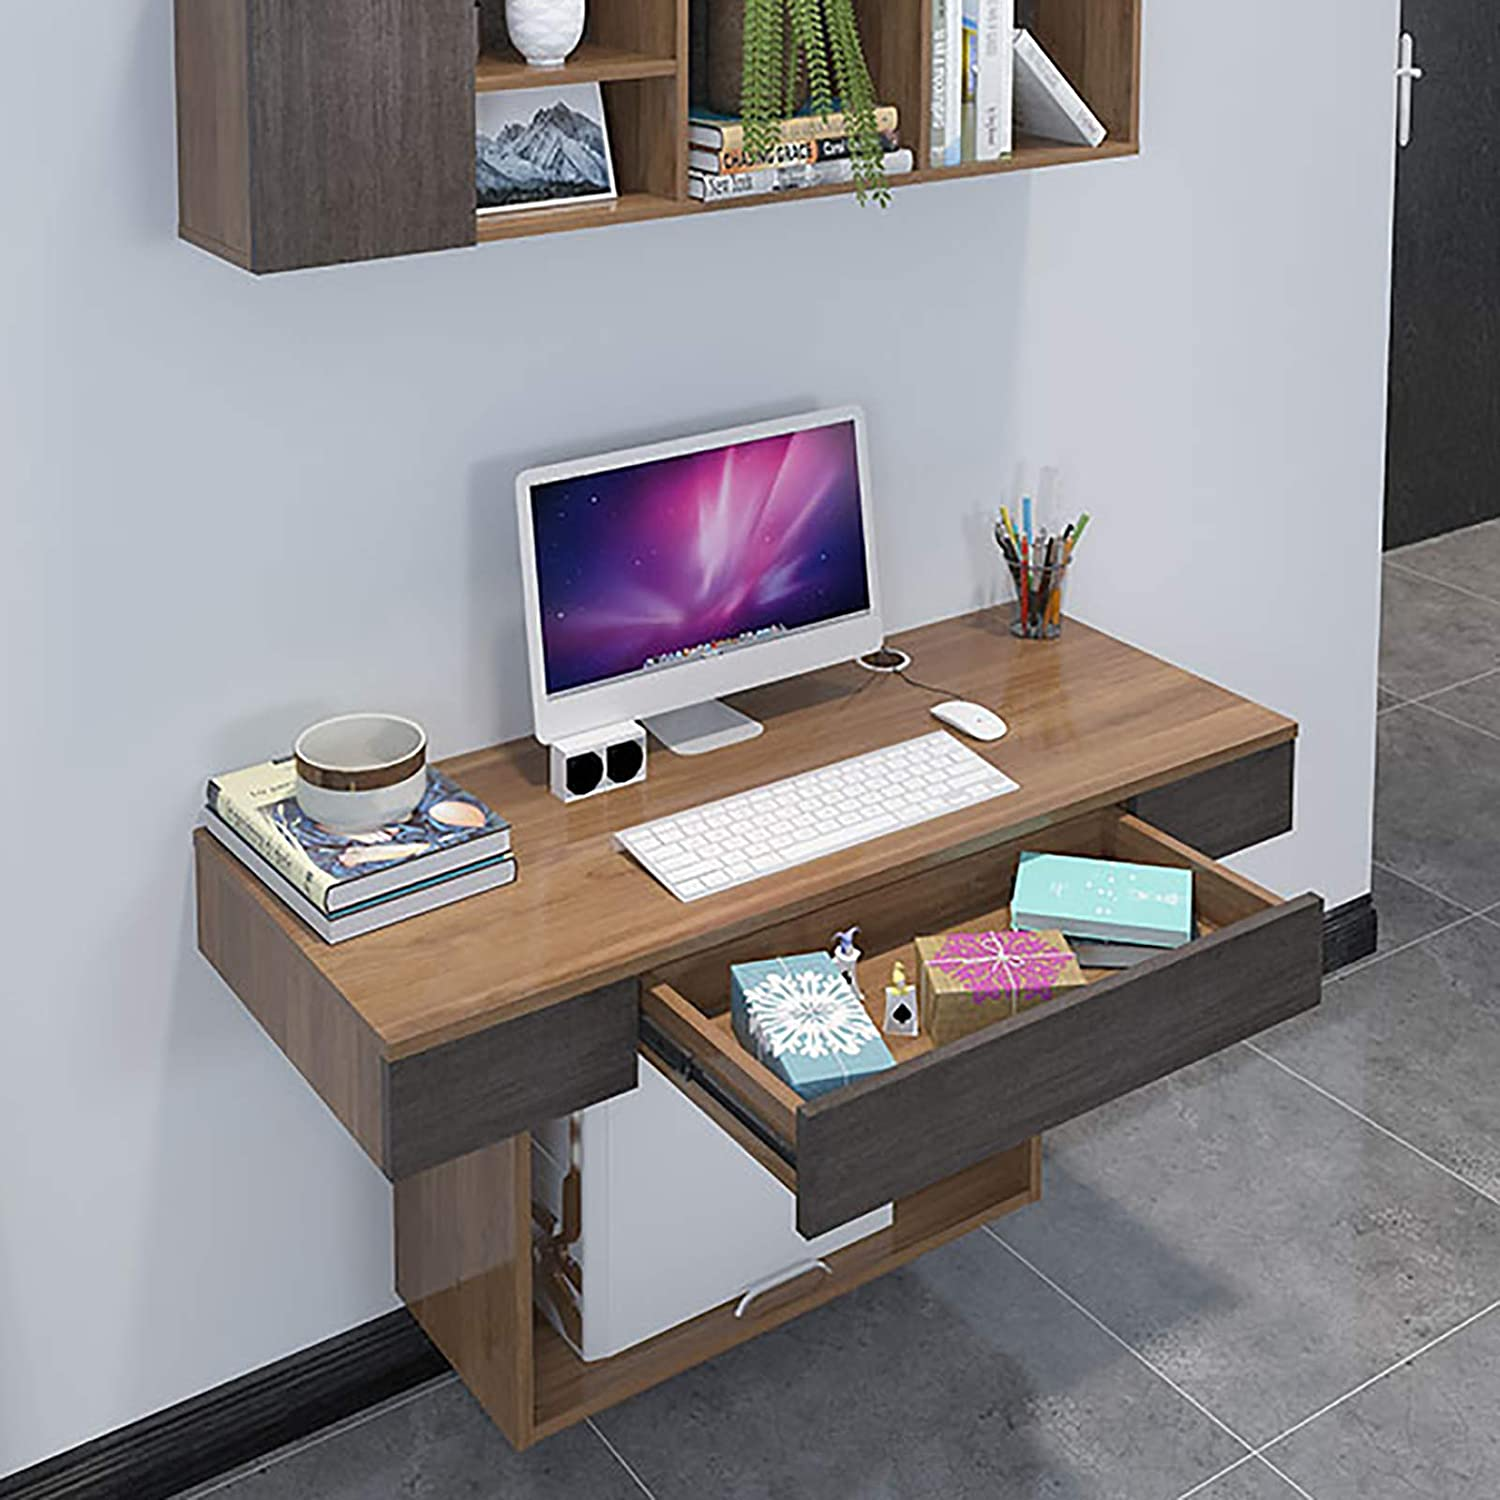 XM&LZ Modern Solid Wood Wall Mounted Desk,Home Floating Computer Desk with Drawers Shelves,Multi-Function Writing Gaming Desk Bedroom Office-Walnut 47x19x24inch